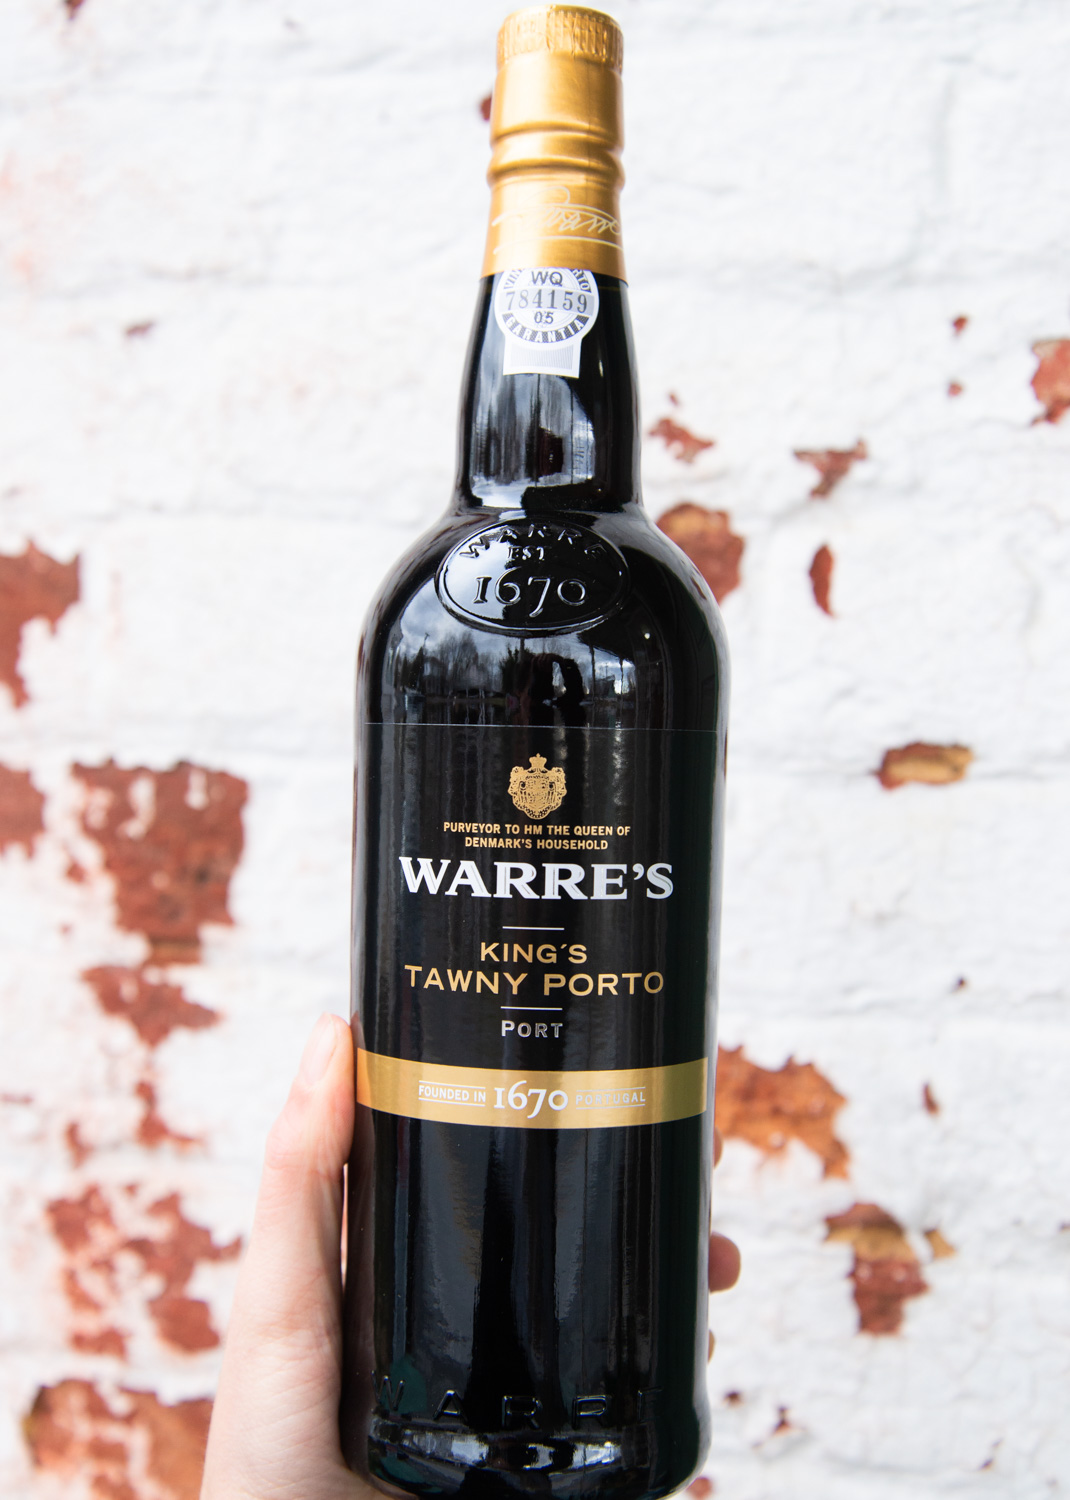 Warre's King's Tawny NV - Retail: $17.95   Sale $16.15Warres Kings Tawny is aged in oak casks for an average of 3 years, and then bottled when ready to drink. In the glass it greets you with a beautiful amber color and a slightly nutty character on the nose. Flavors of cocoa powder, plum tart, and dark coffee smooth out onto the palate. It drinks pure and fresh with a luscious, long finish.